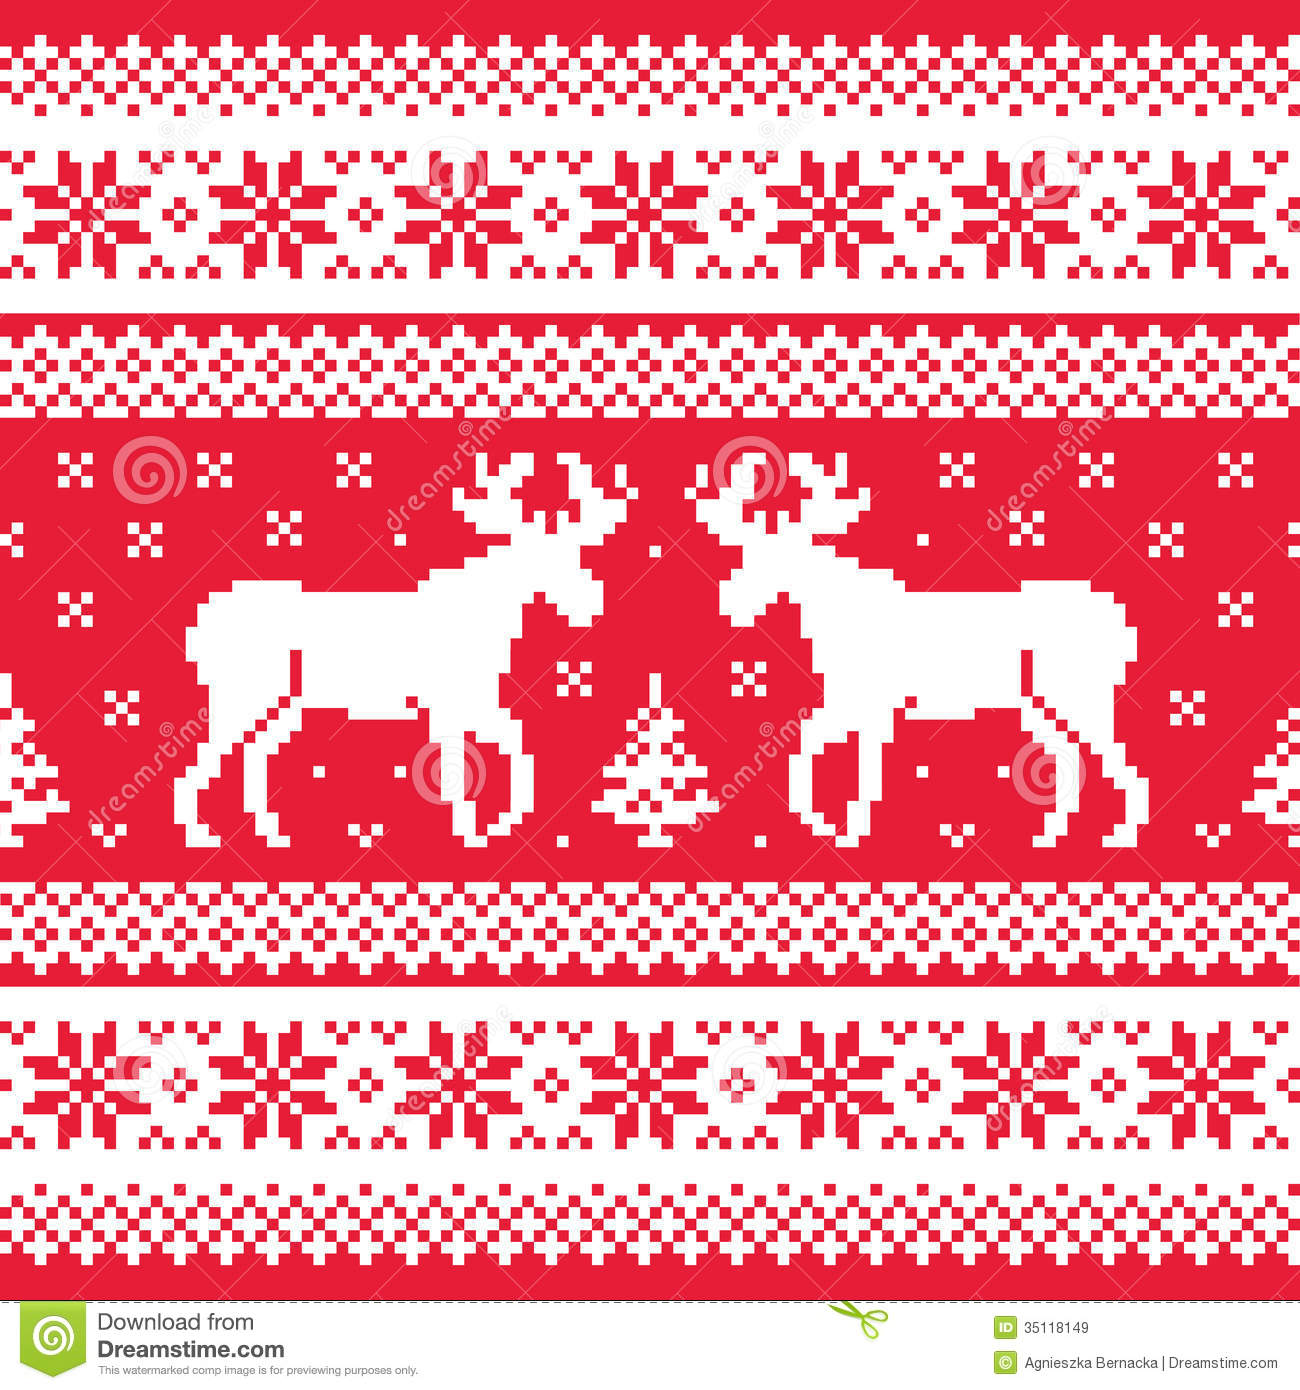 Quick Knits Free Pattern : Christmas And Winter Knitted Pattern With Reindeer Stock Vector - Image: 3511...